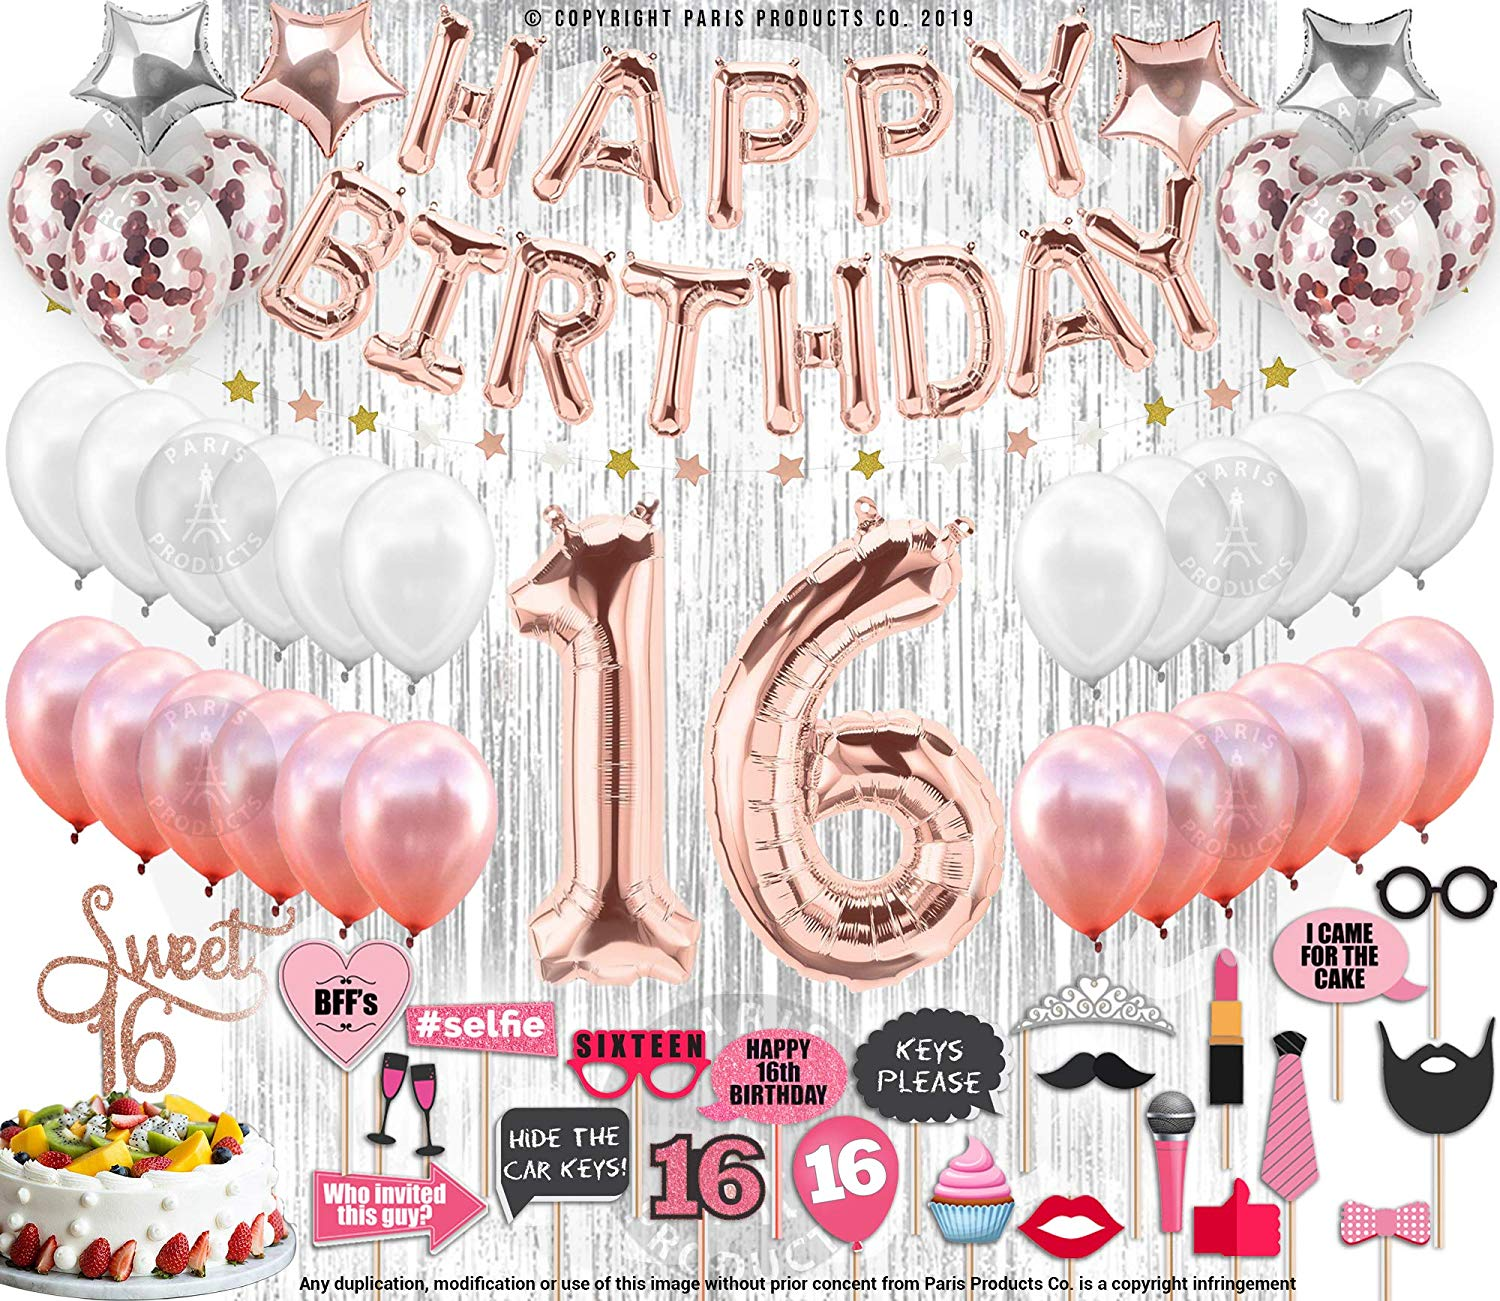 16th birthday clipart simple vector transparent 16th Birthday Decorations Party Supplies Sweet 16 Birthday balloons | Rose  gold Confetti Balloons|16 Cake Topper Rose Gold| Silver curtain for Photo  ... vector transparent